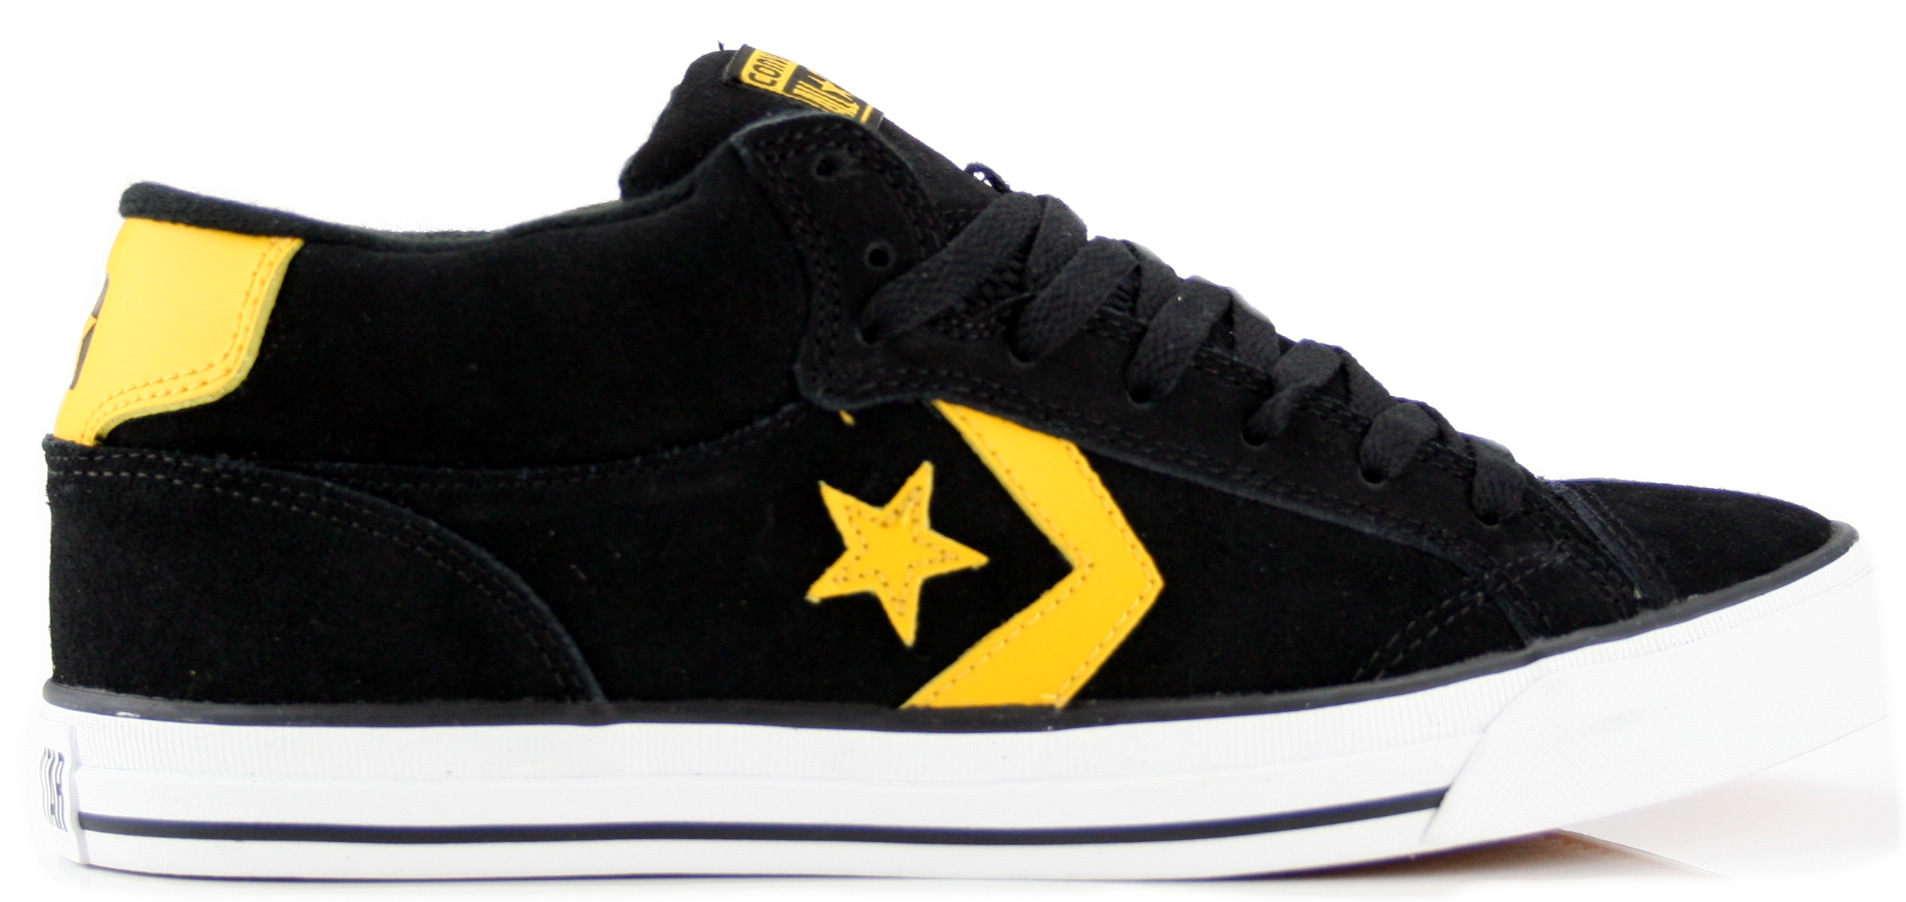 are converse skate shoes